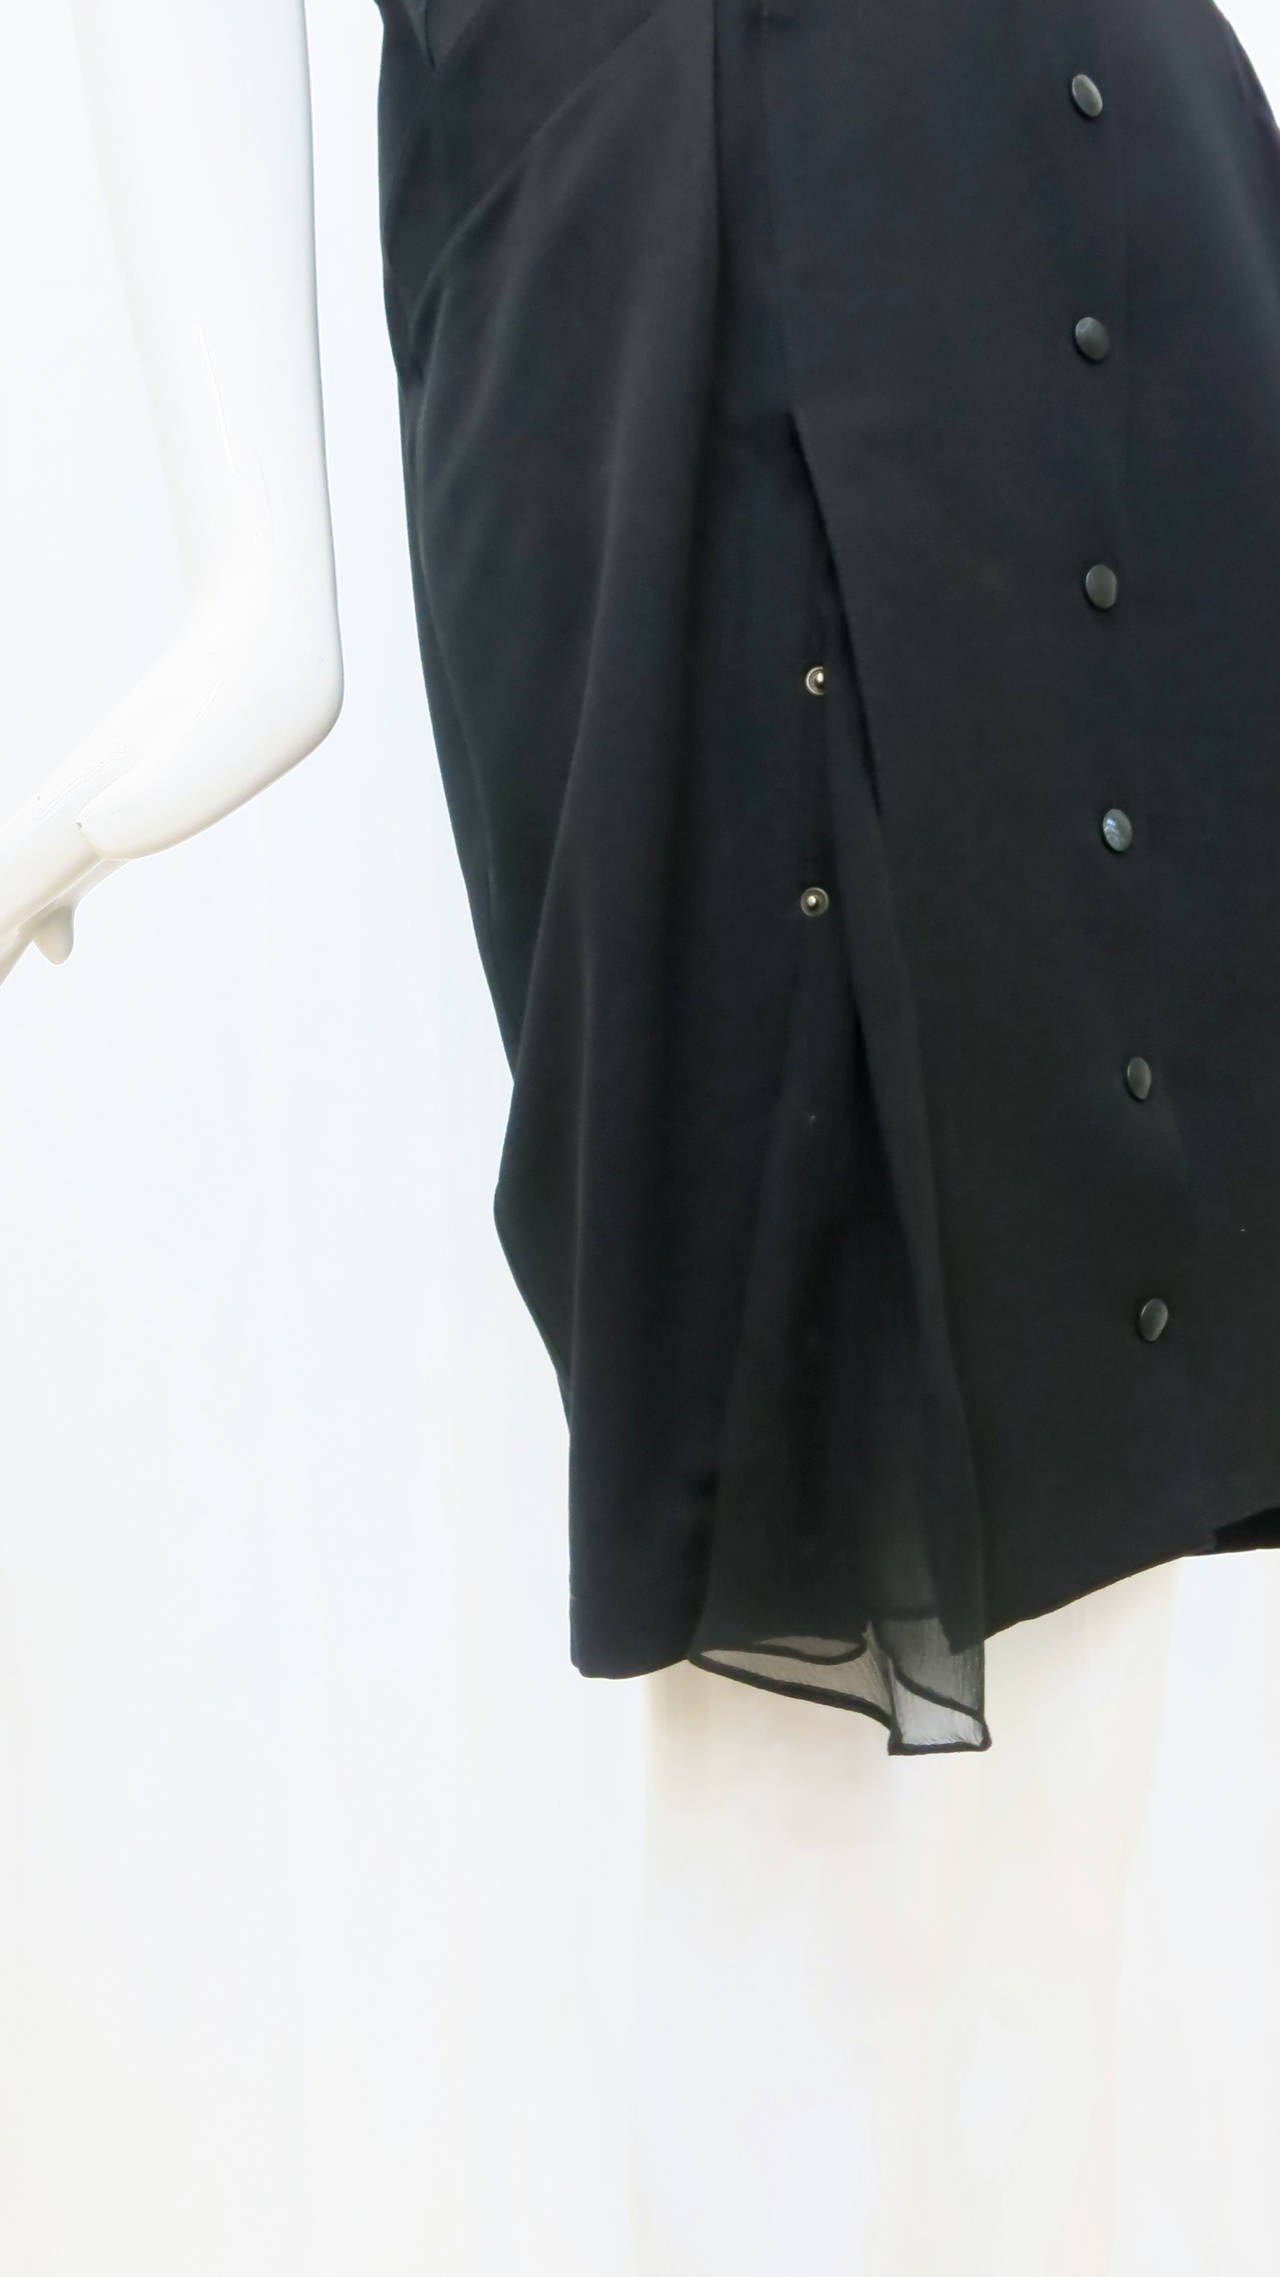 Thierry Mugler Black Shirt Dress, 1980s  In Good Condition For Sale In Brooklyn, NY